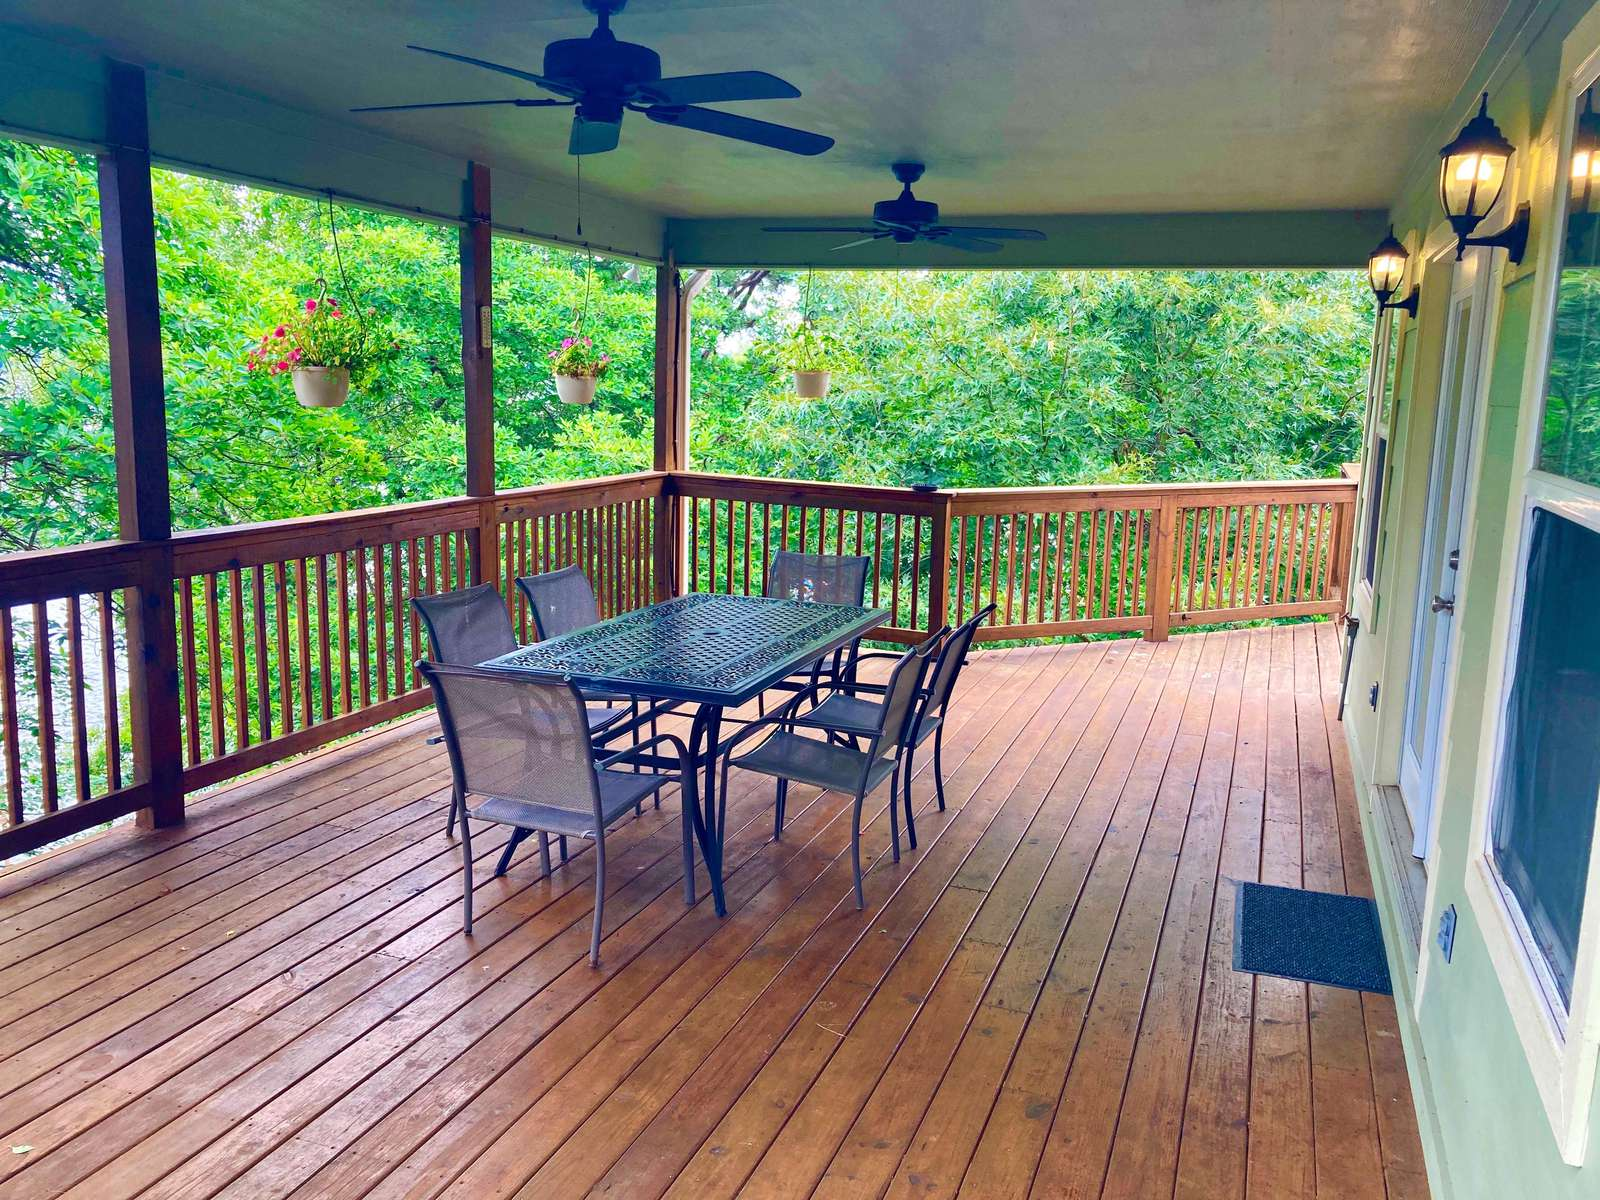 We weren't joking when we nicknamed the home the Big Treehouse. This porch is nestled in the trees. There's plenty more decks if you don't like heights! lol